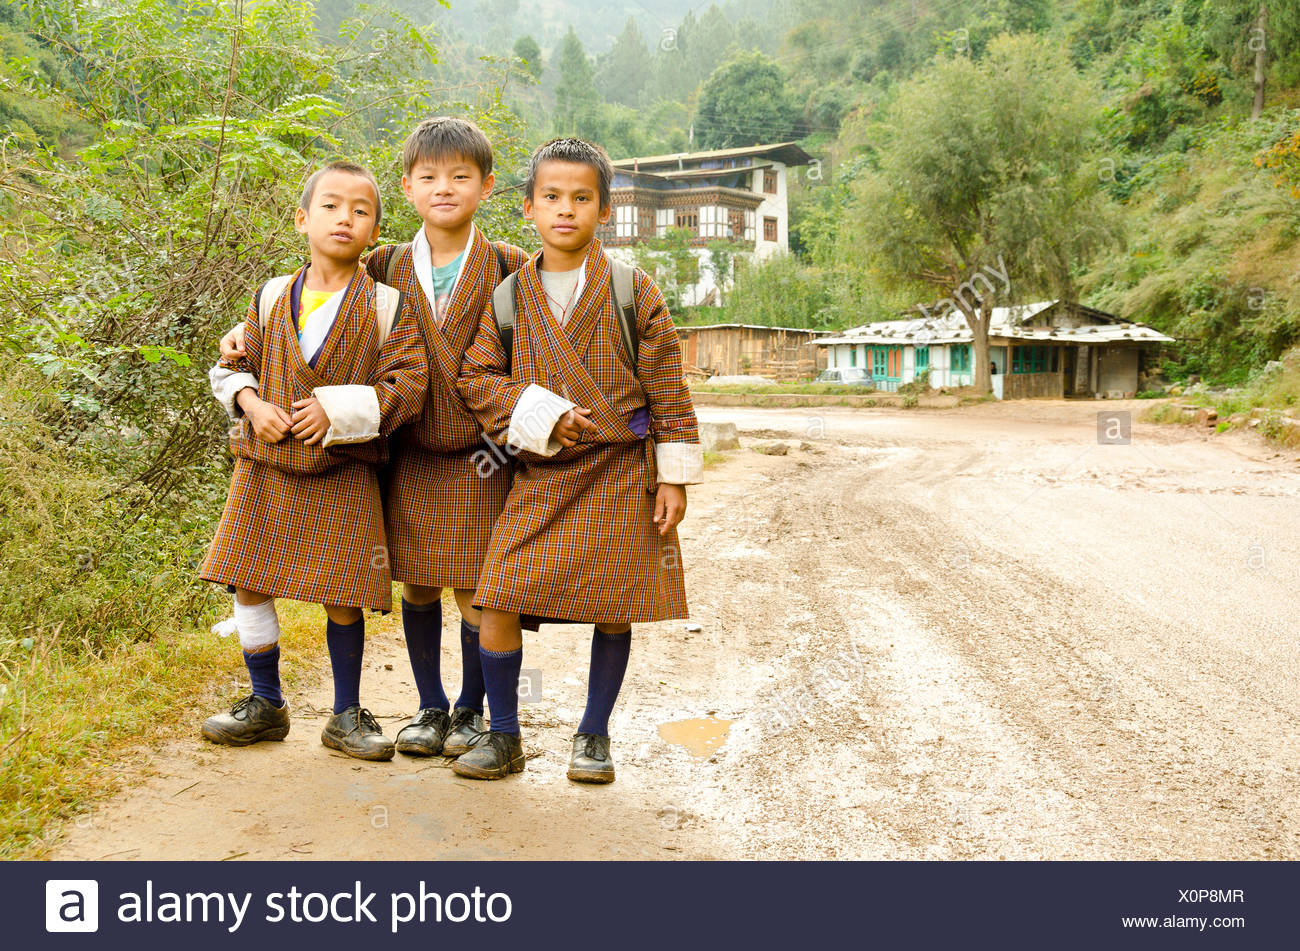 Bhutanese schoolboys in traditional dress - Stock Image